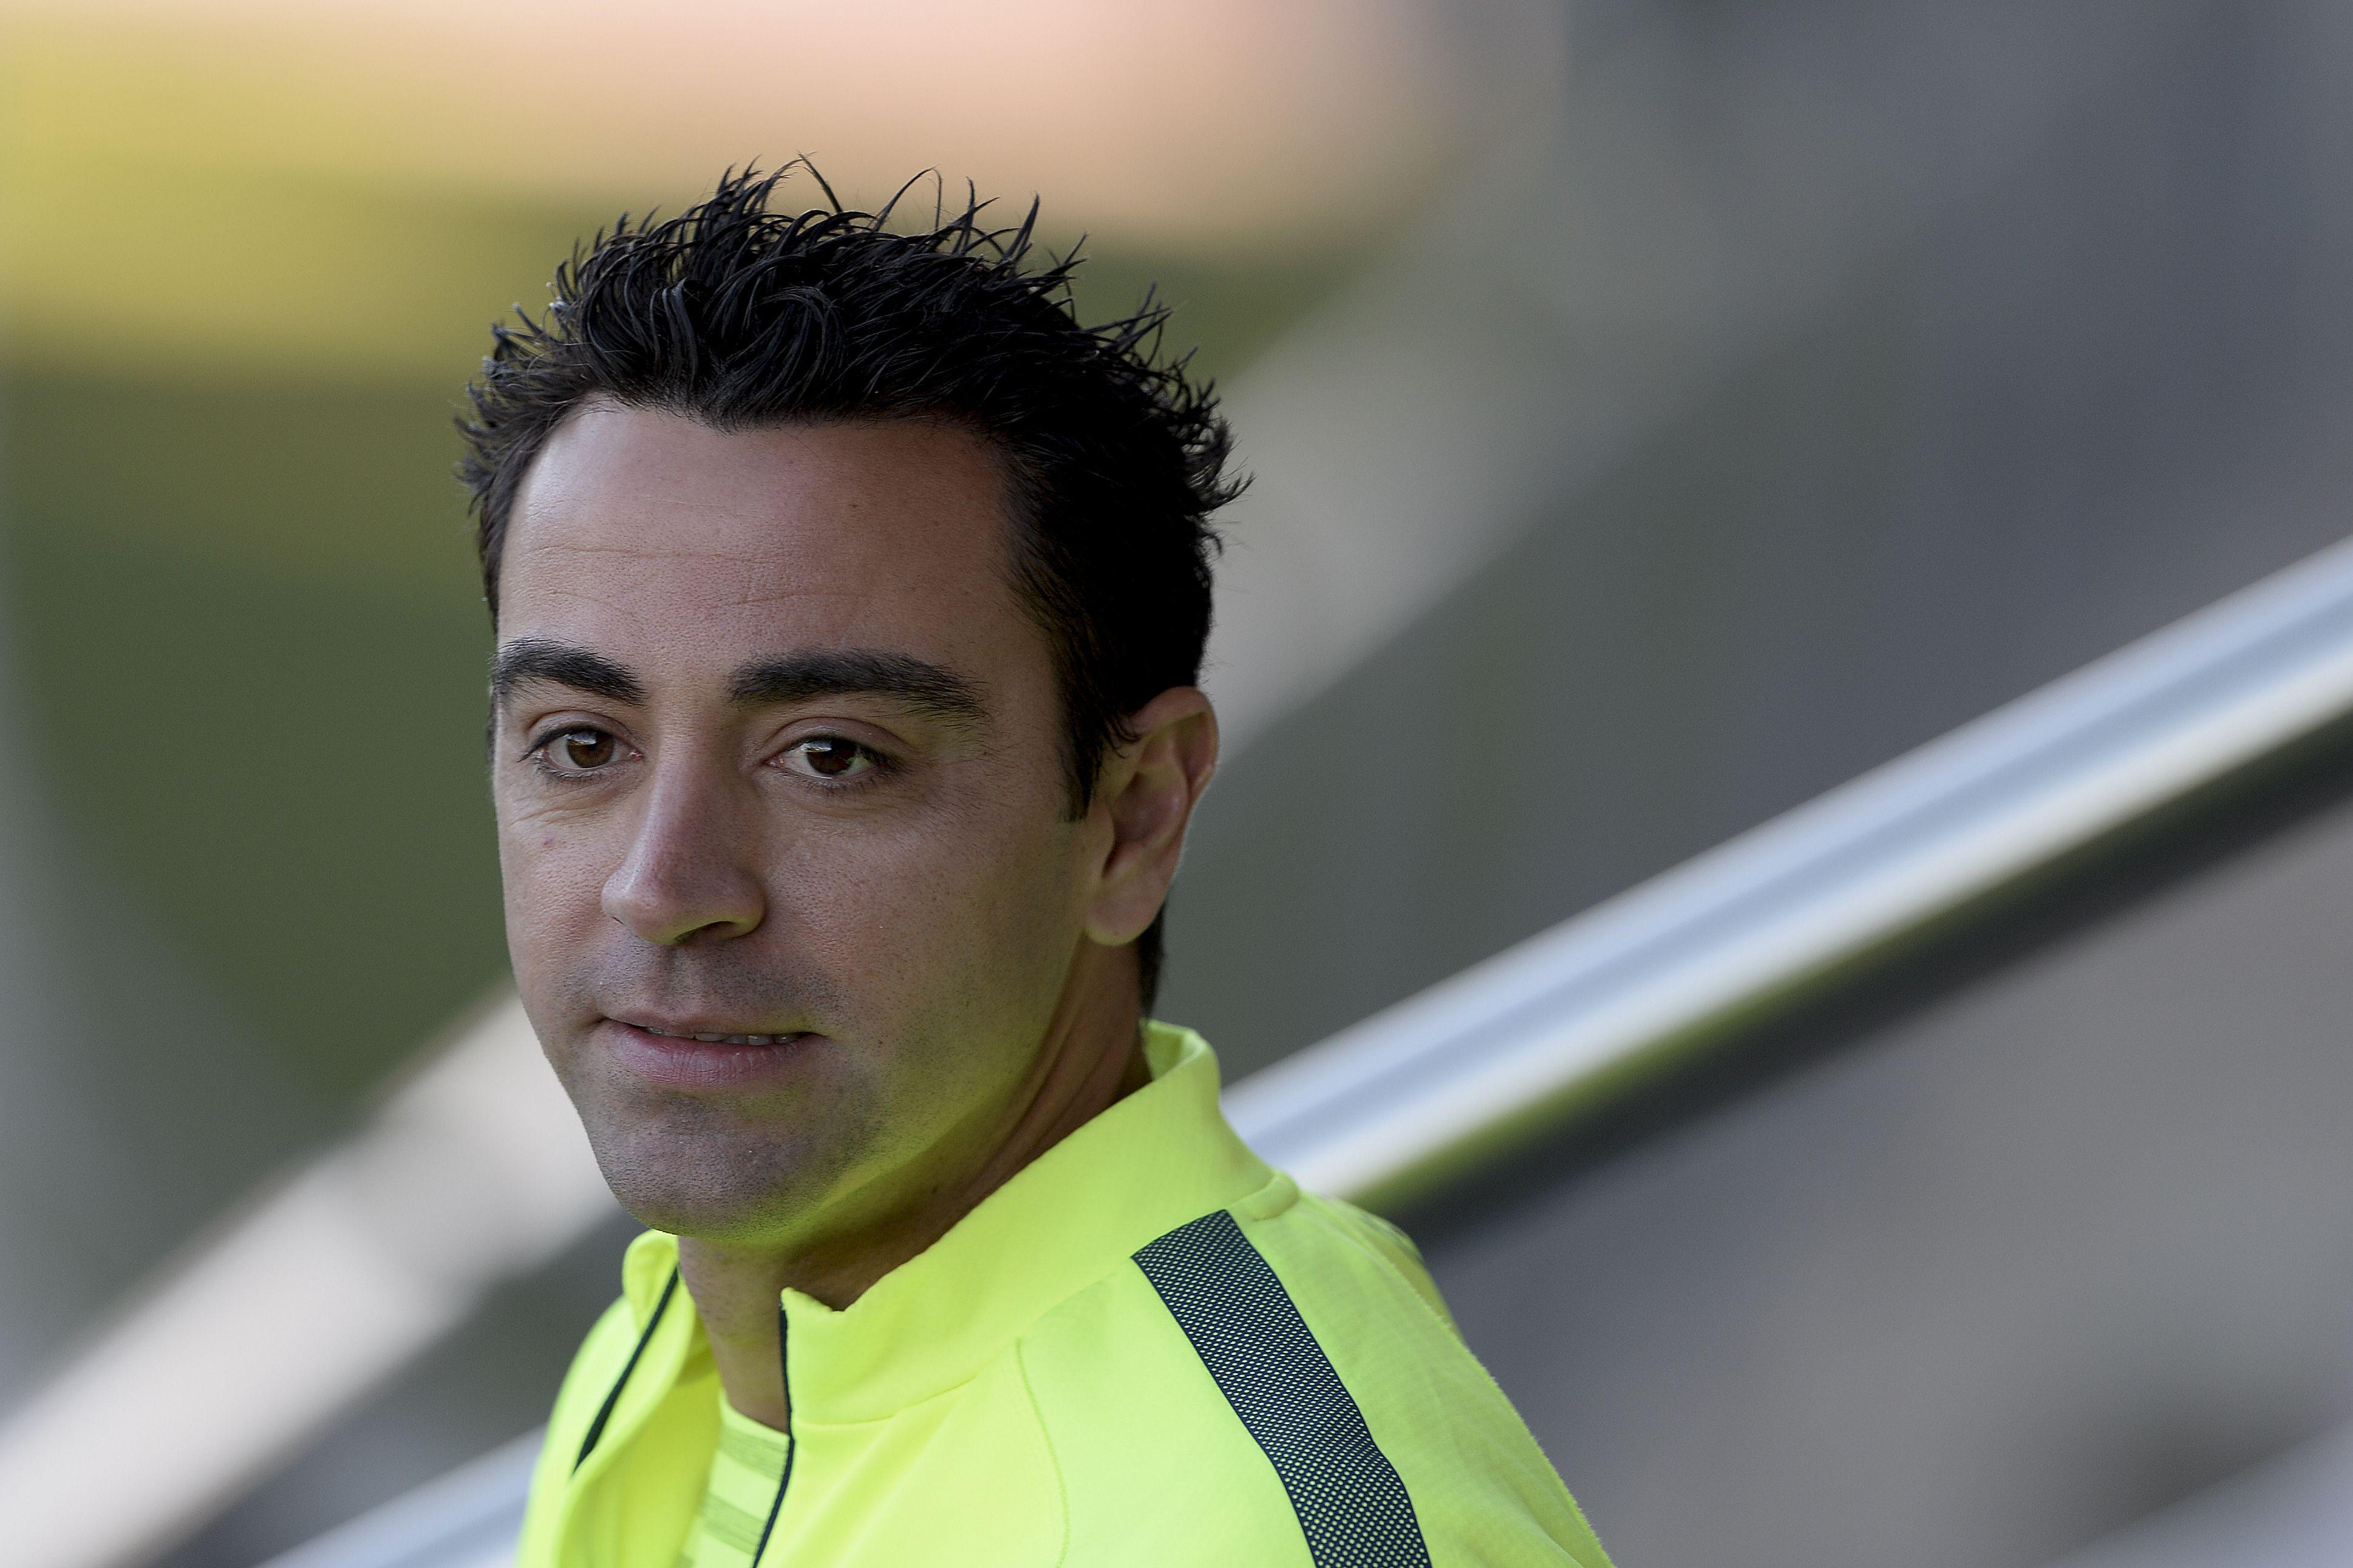 Xavi has been playing for Qatari side Al Sadd since 2015